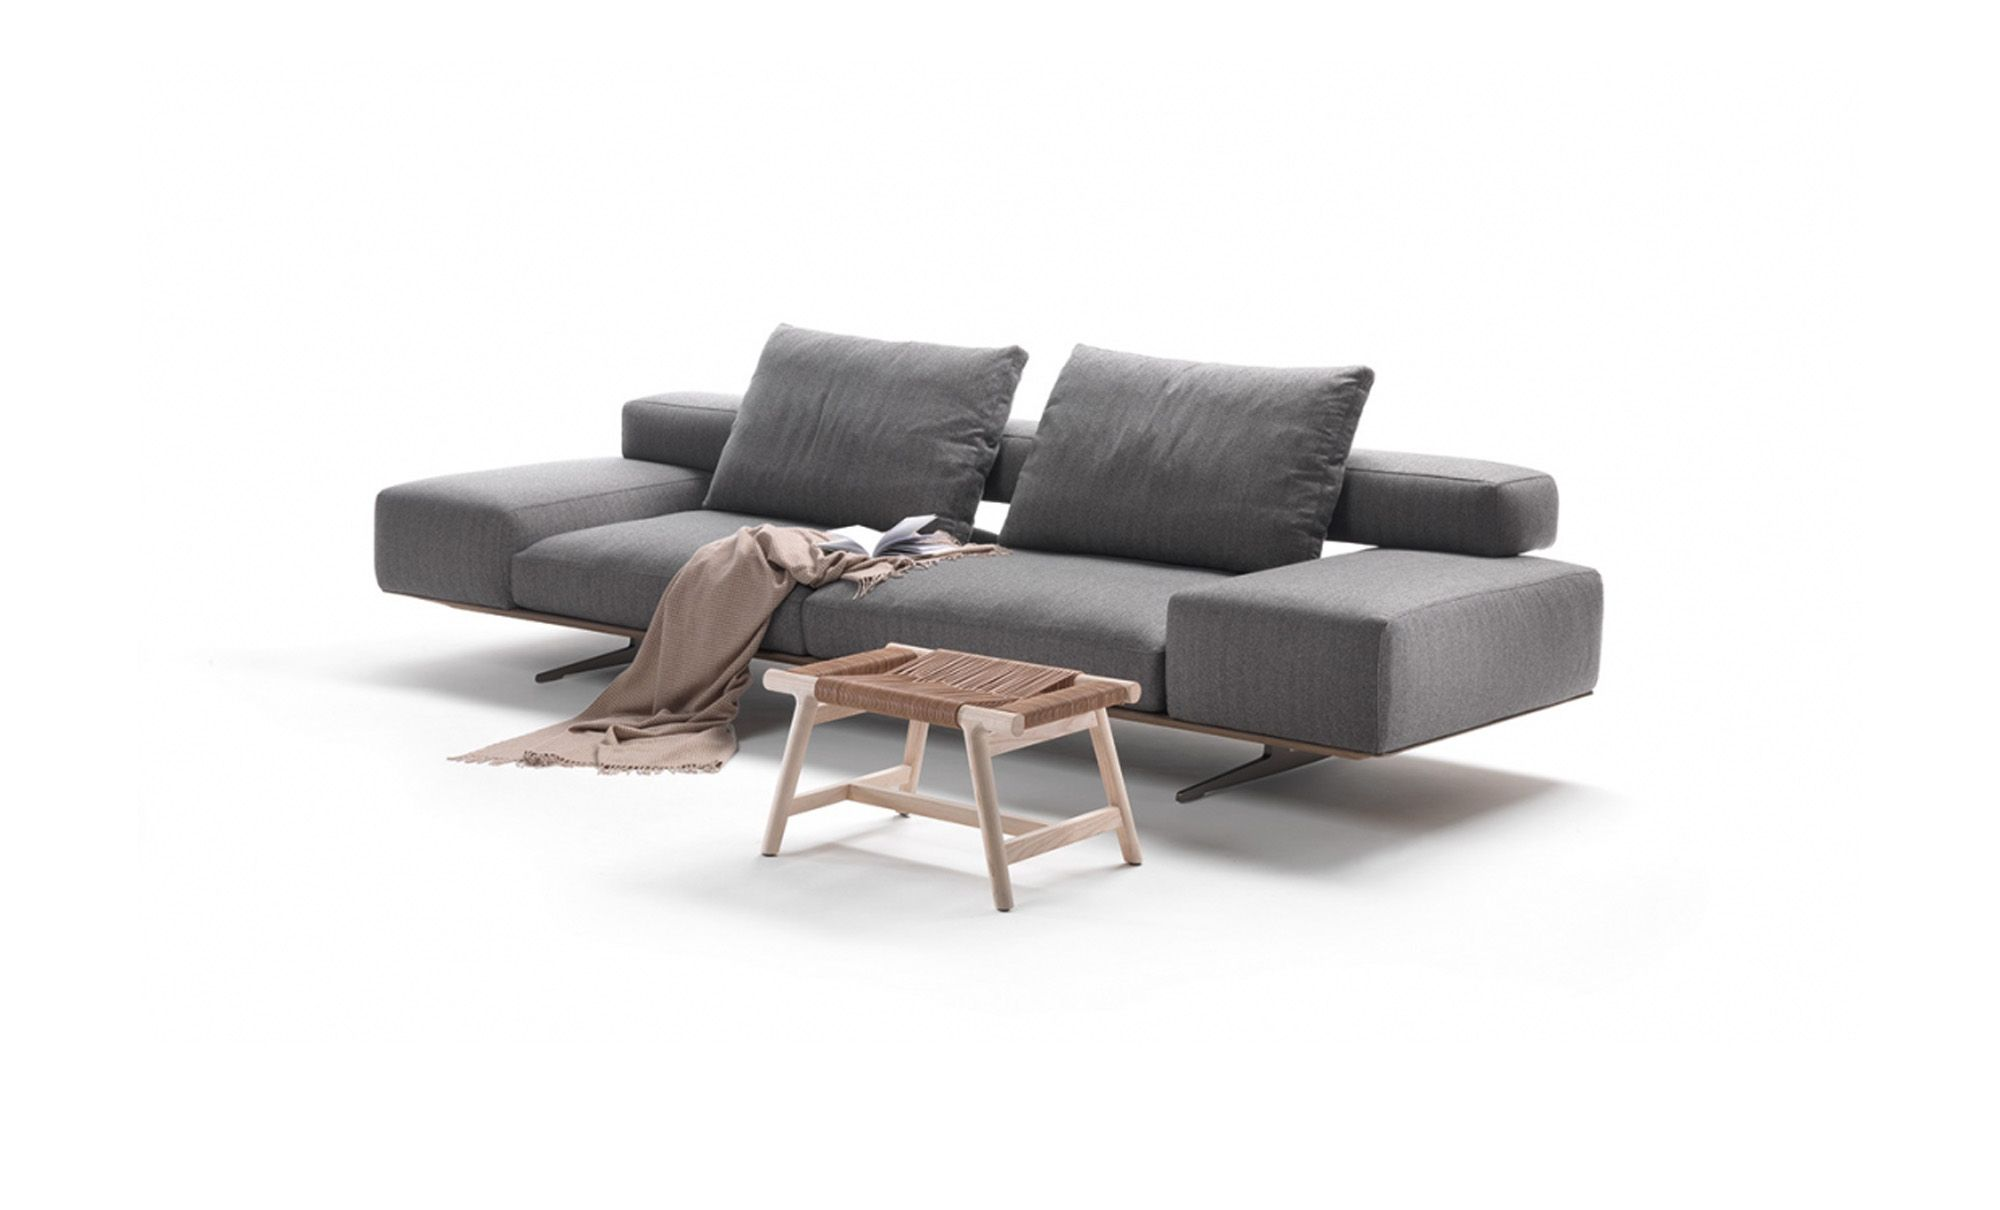 Wing Sofa In Grey With Giano Ottoman From Flexform Sofas  # Muebles Di Giano